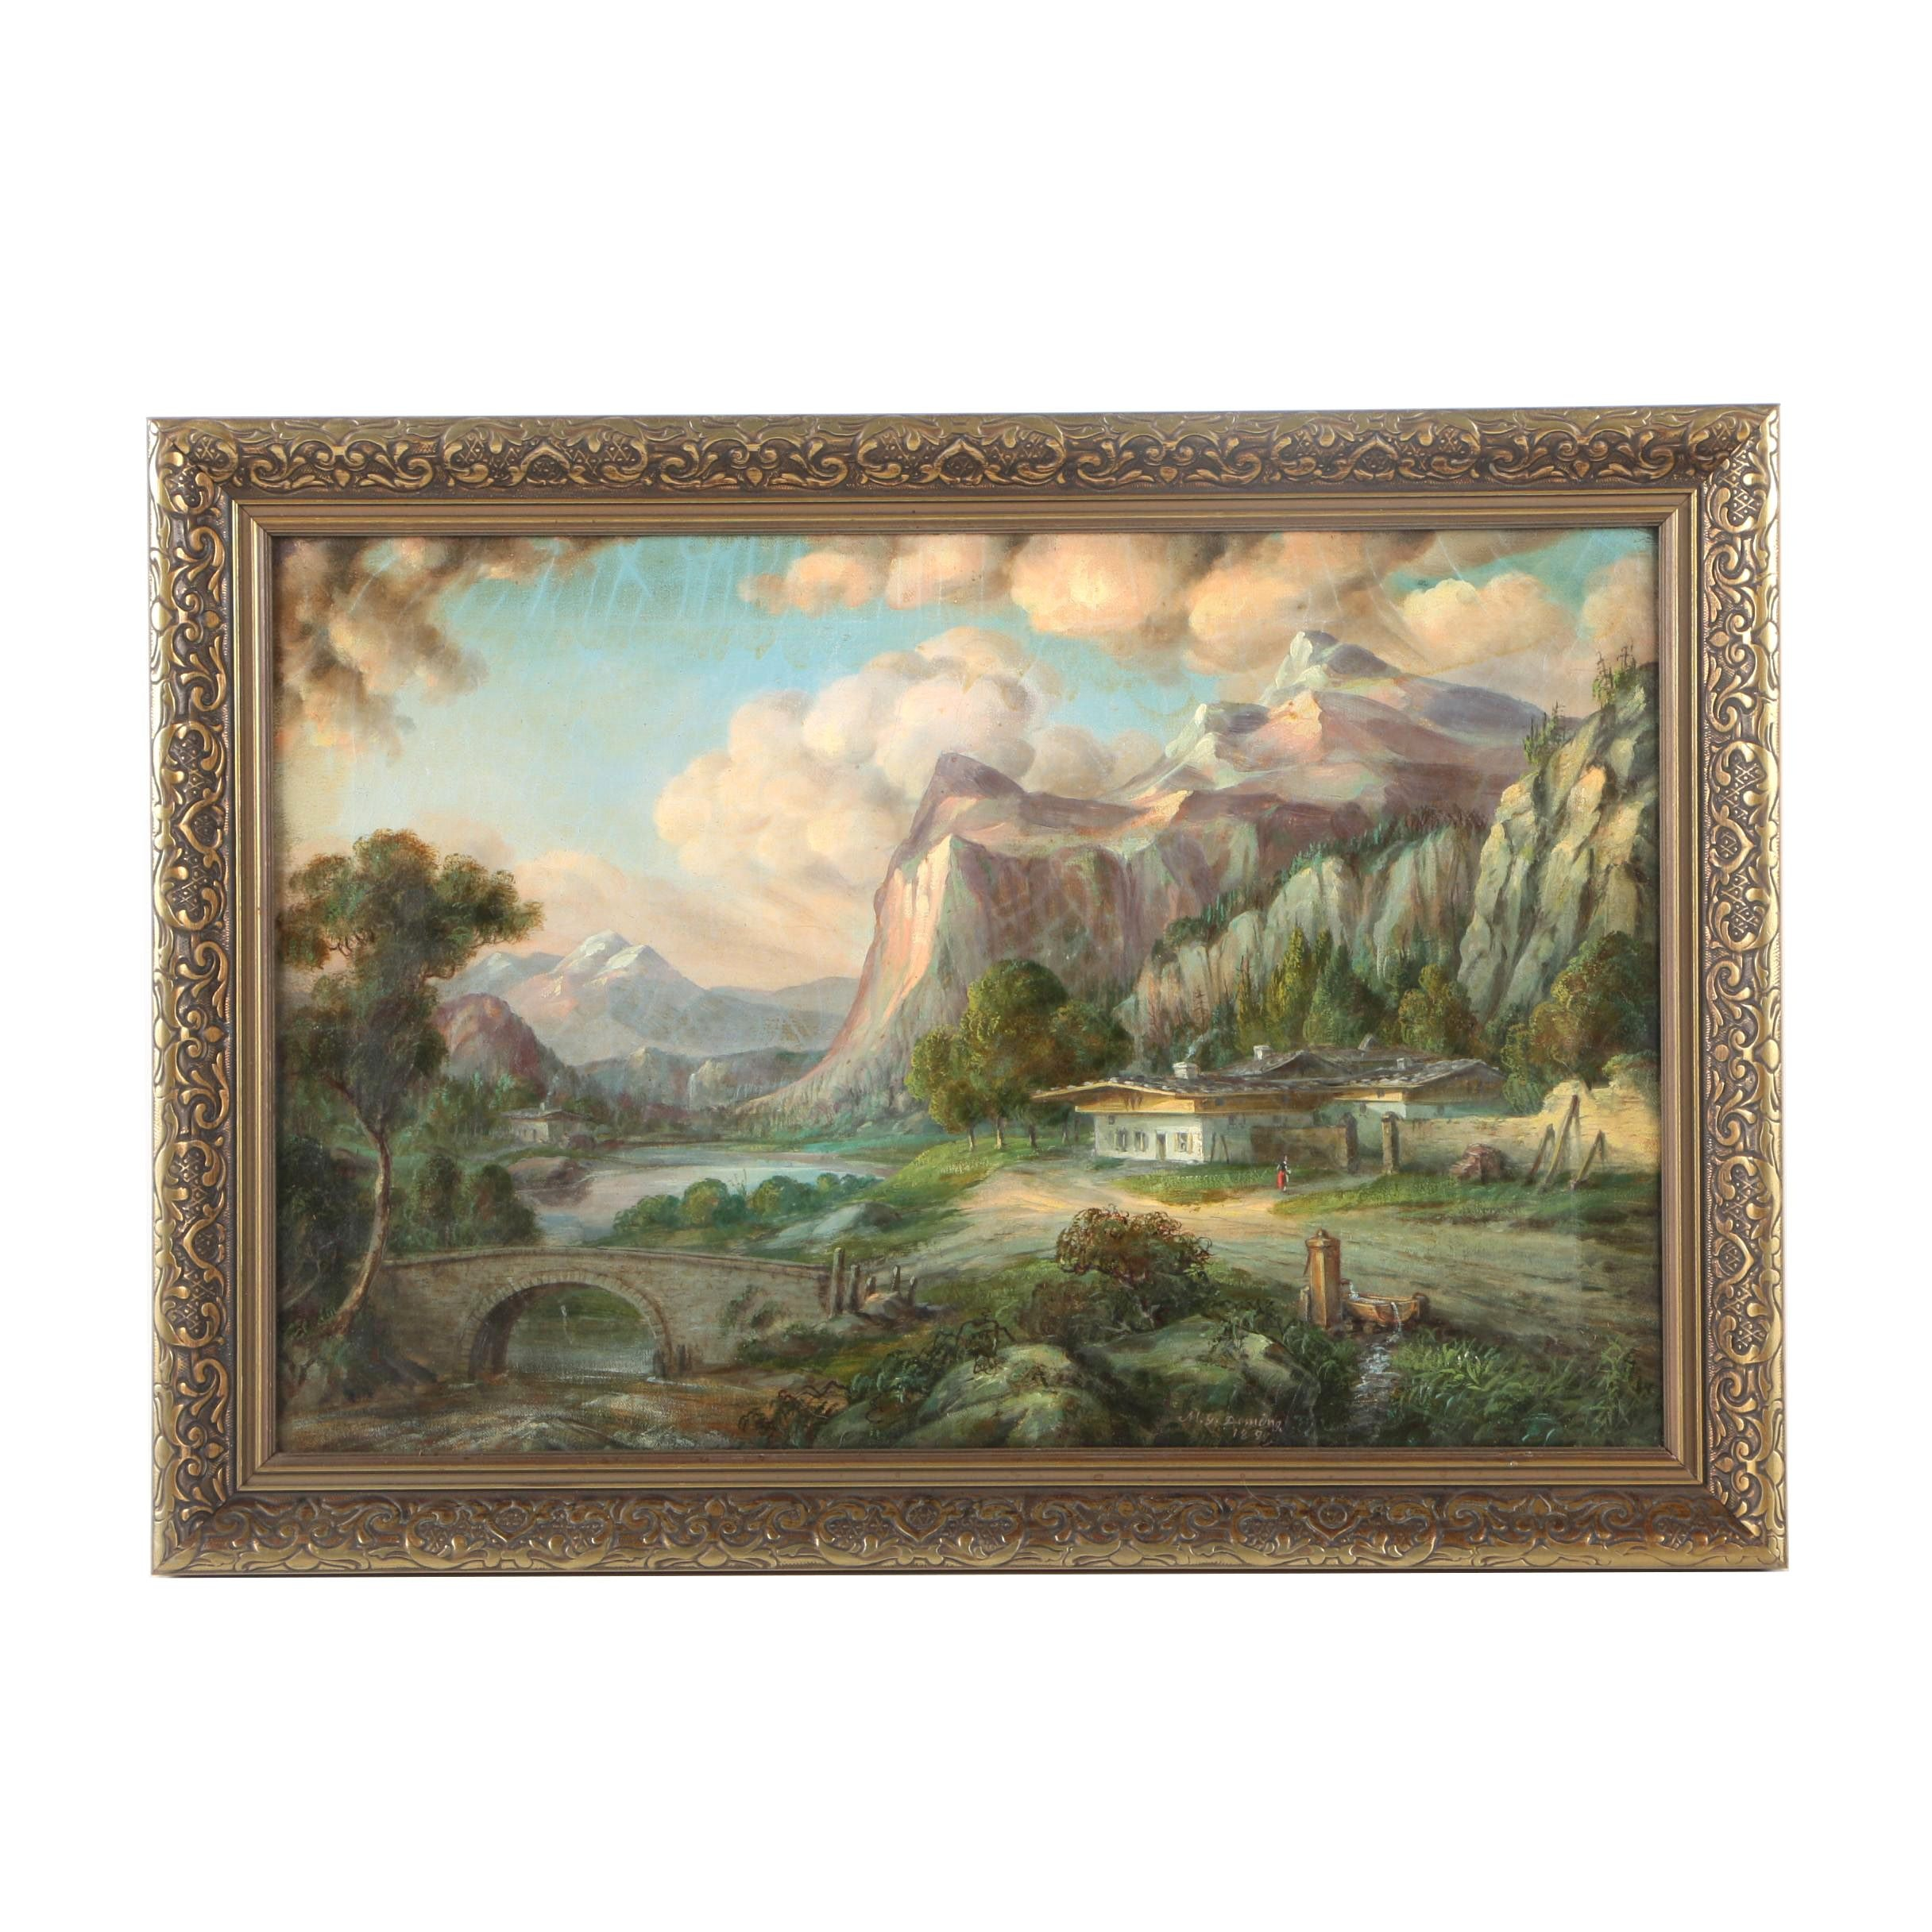 M. G. Deming Oil Painting on Canvas of a Mountain Scene